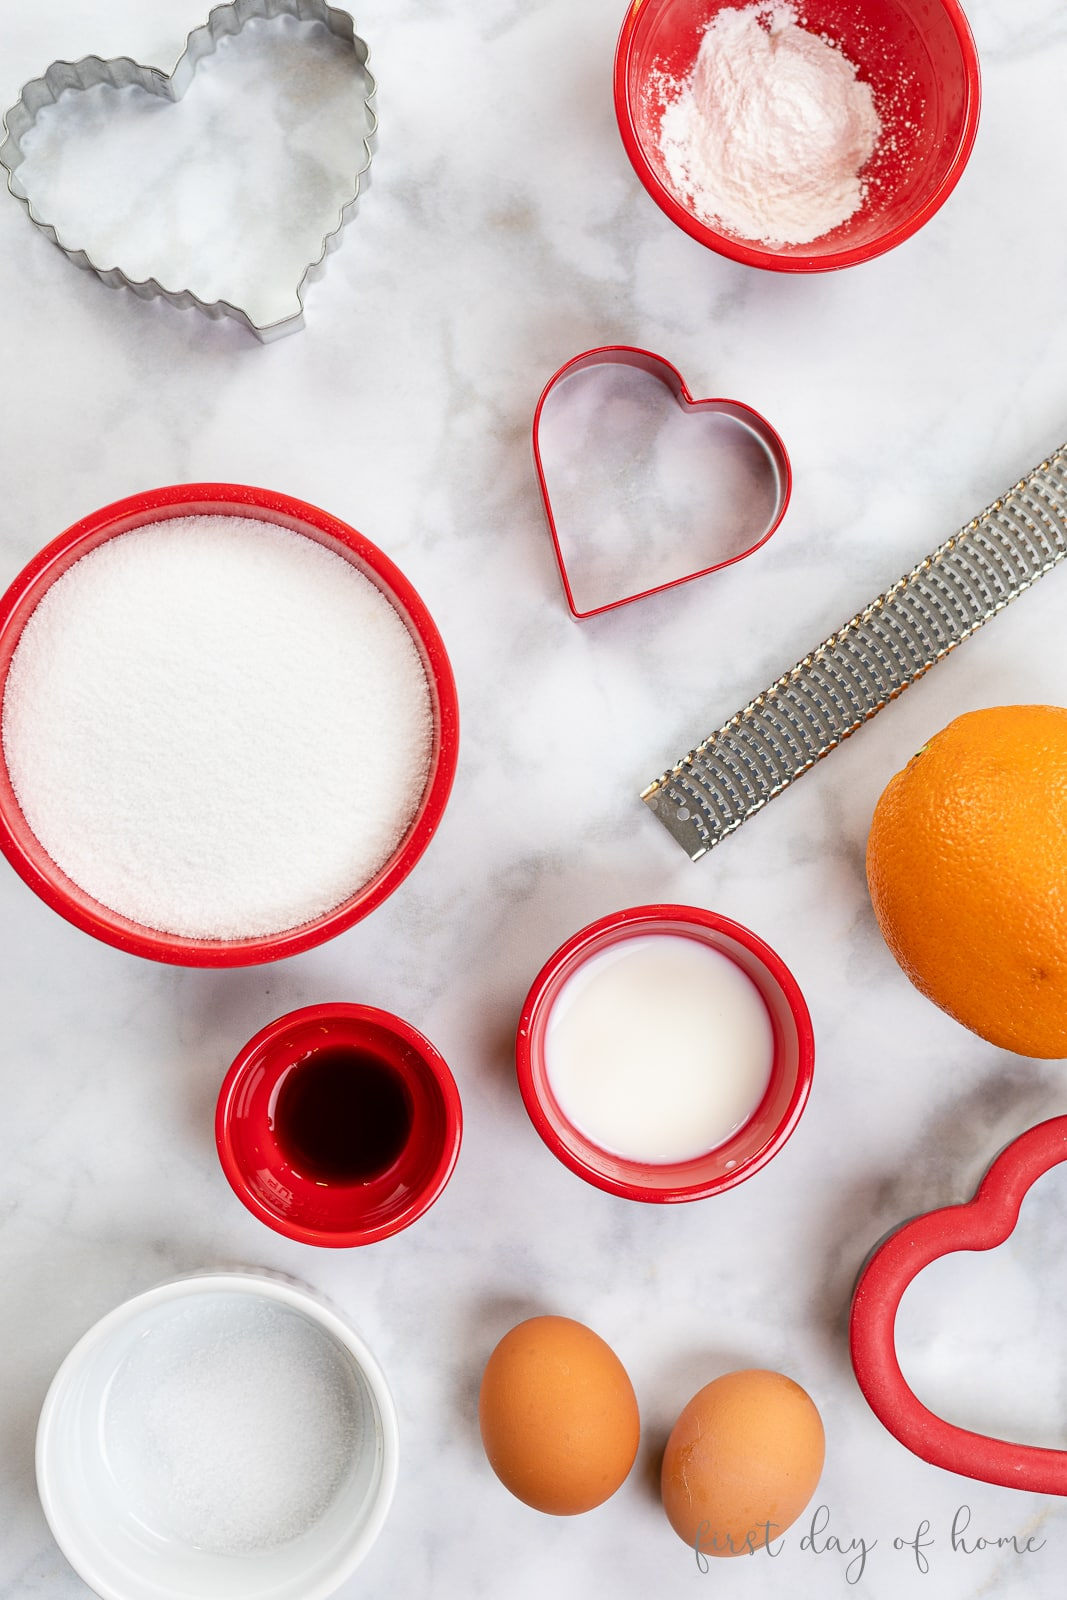 Ingredients for Valentine's Day sugar cookies recipe, including heart cookie cutters, sugar, vanilla and orange peel